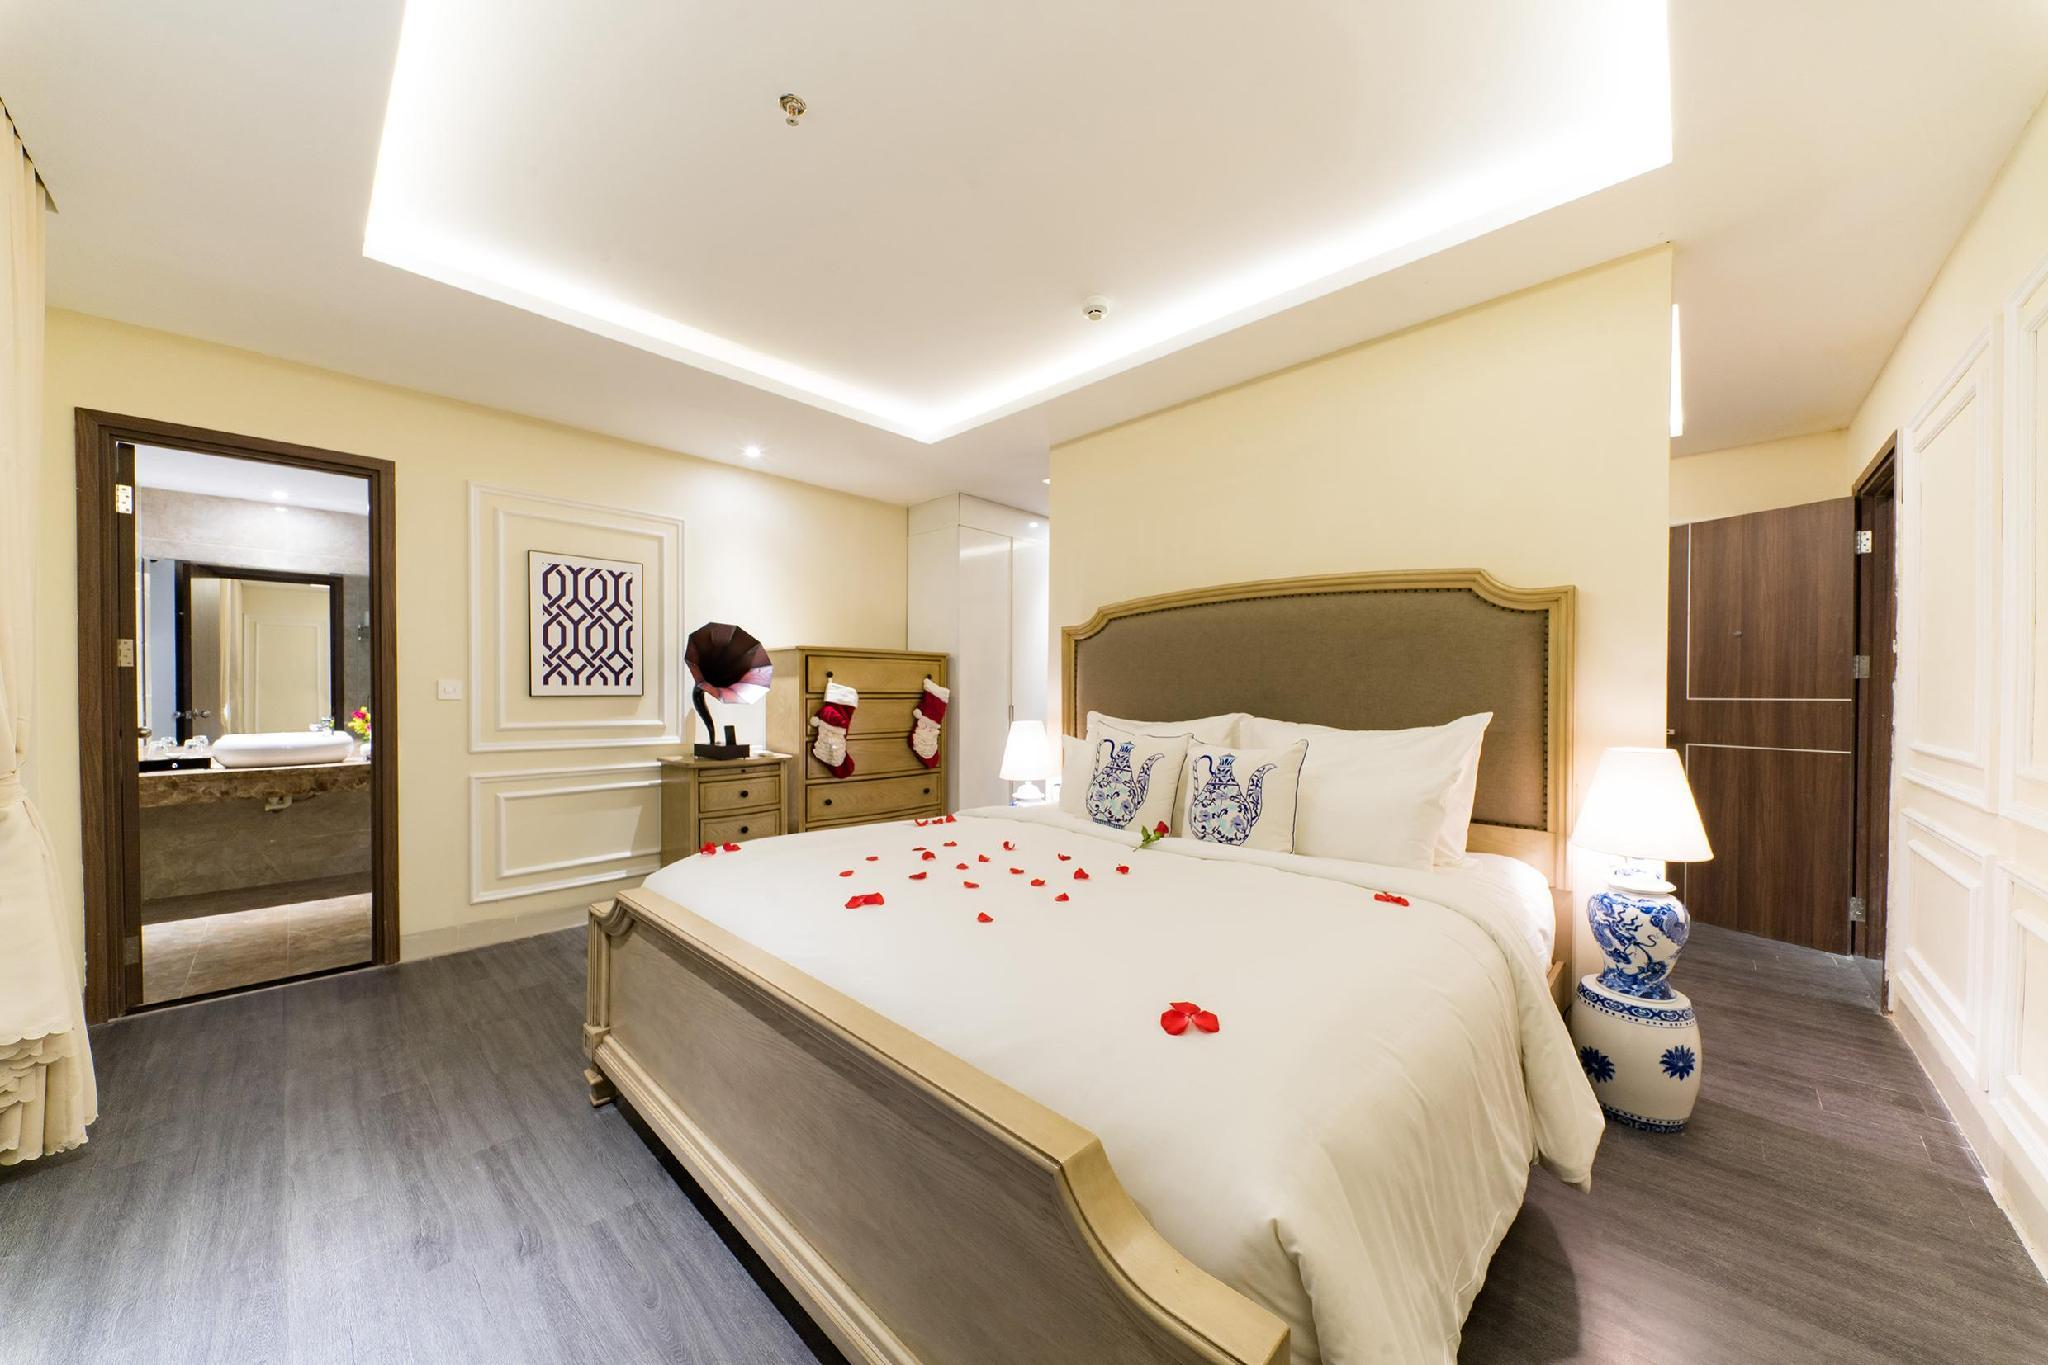 Parze Ocean Hotel And Spa